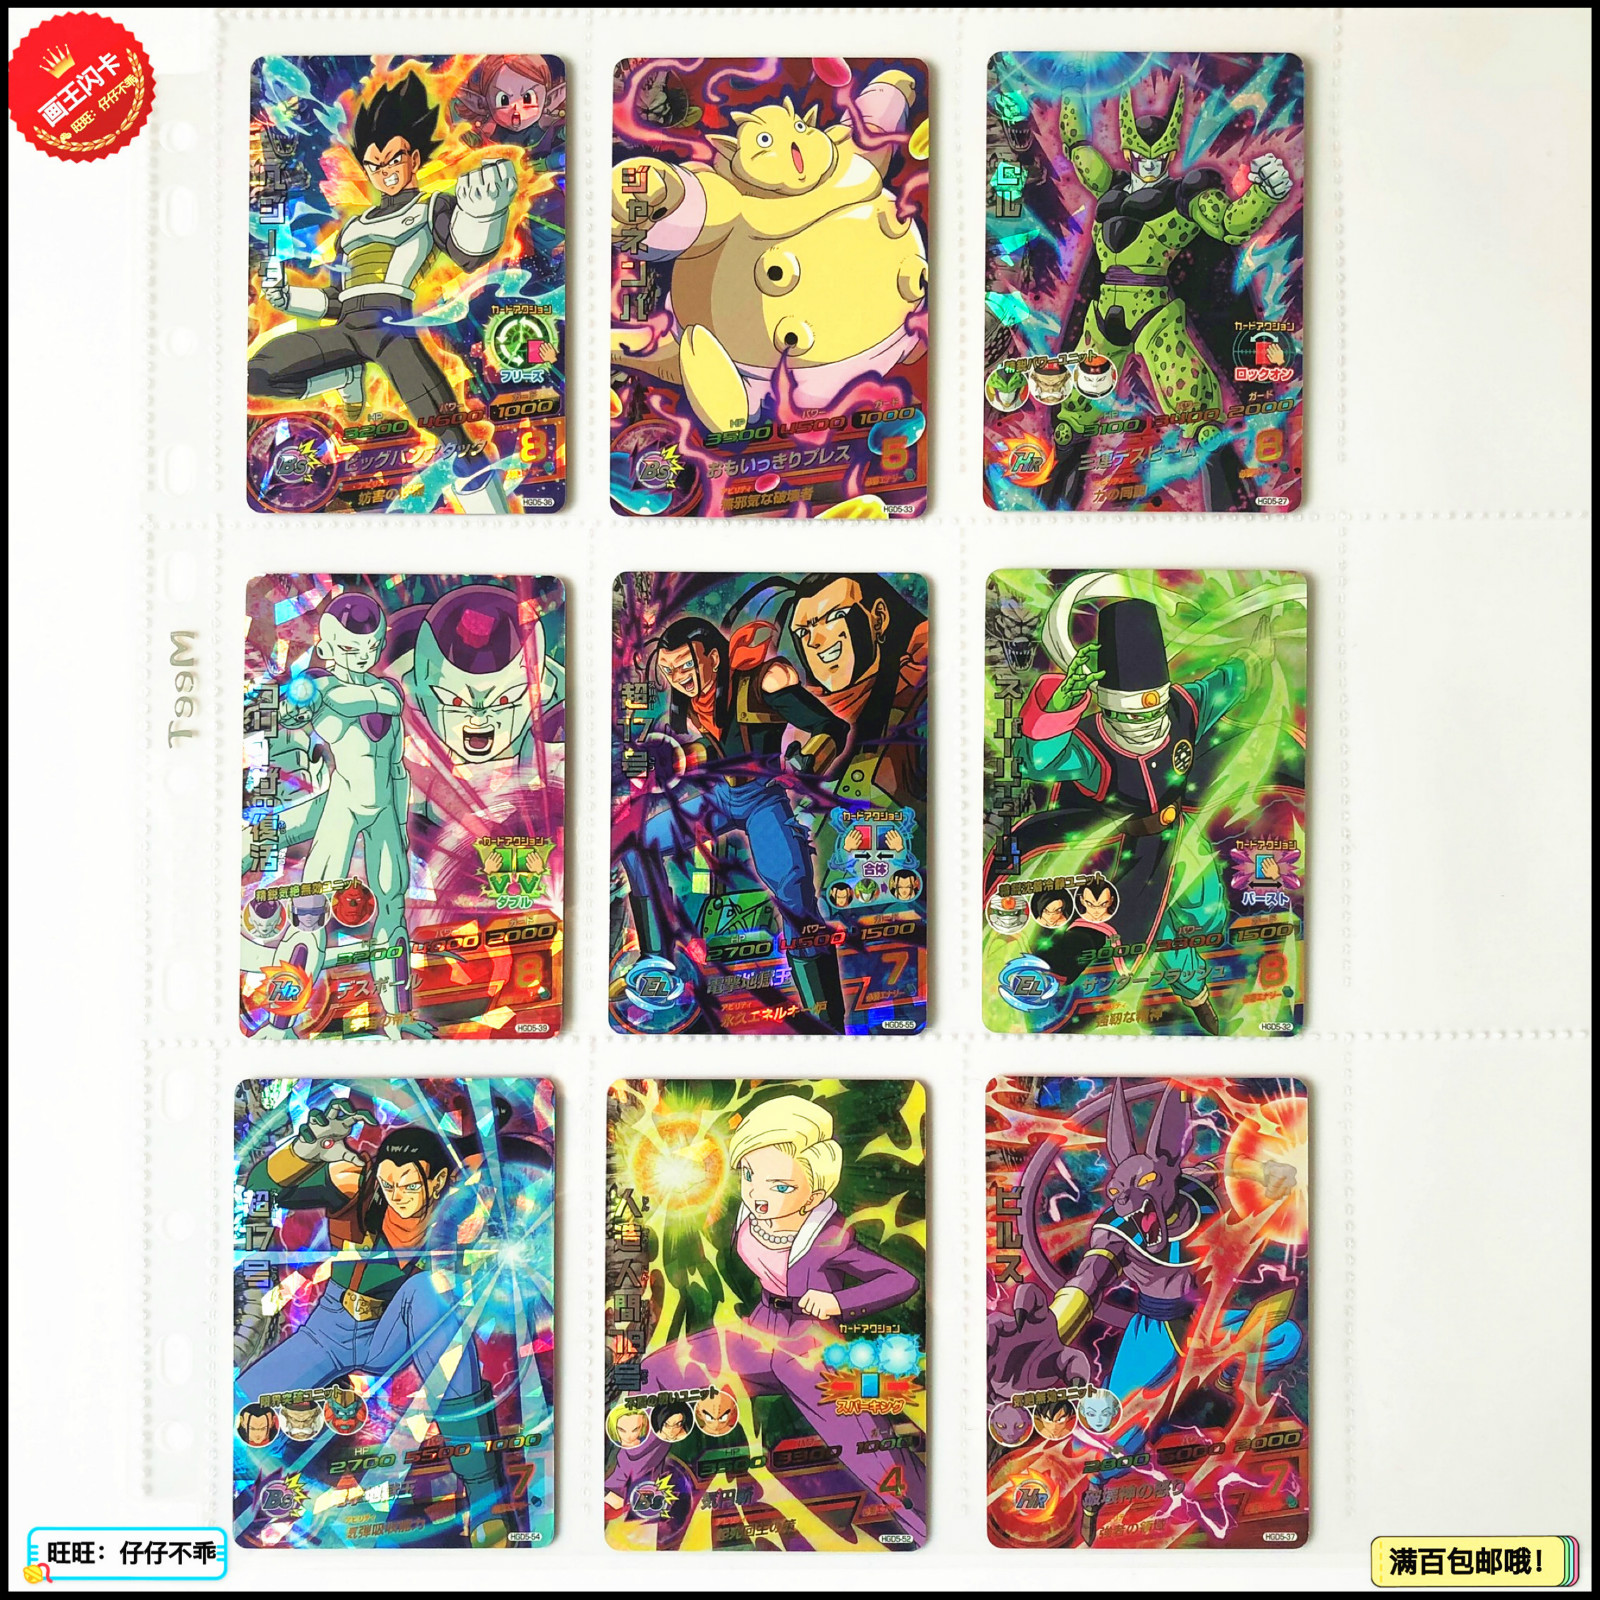 Japan Original Dragon Ball Hero Card SR Flash 3 Stars HGD5 Goku Toys Hobbies Collectibles Game Collection Anime Cards